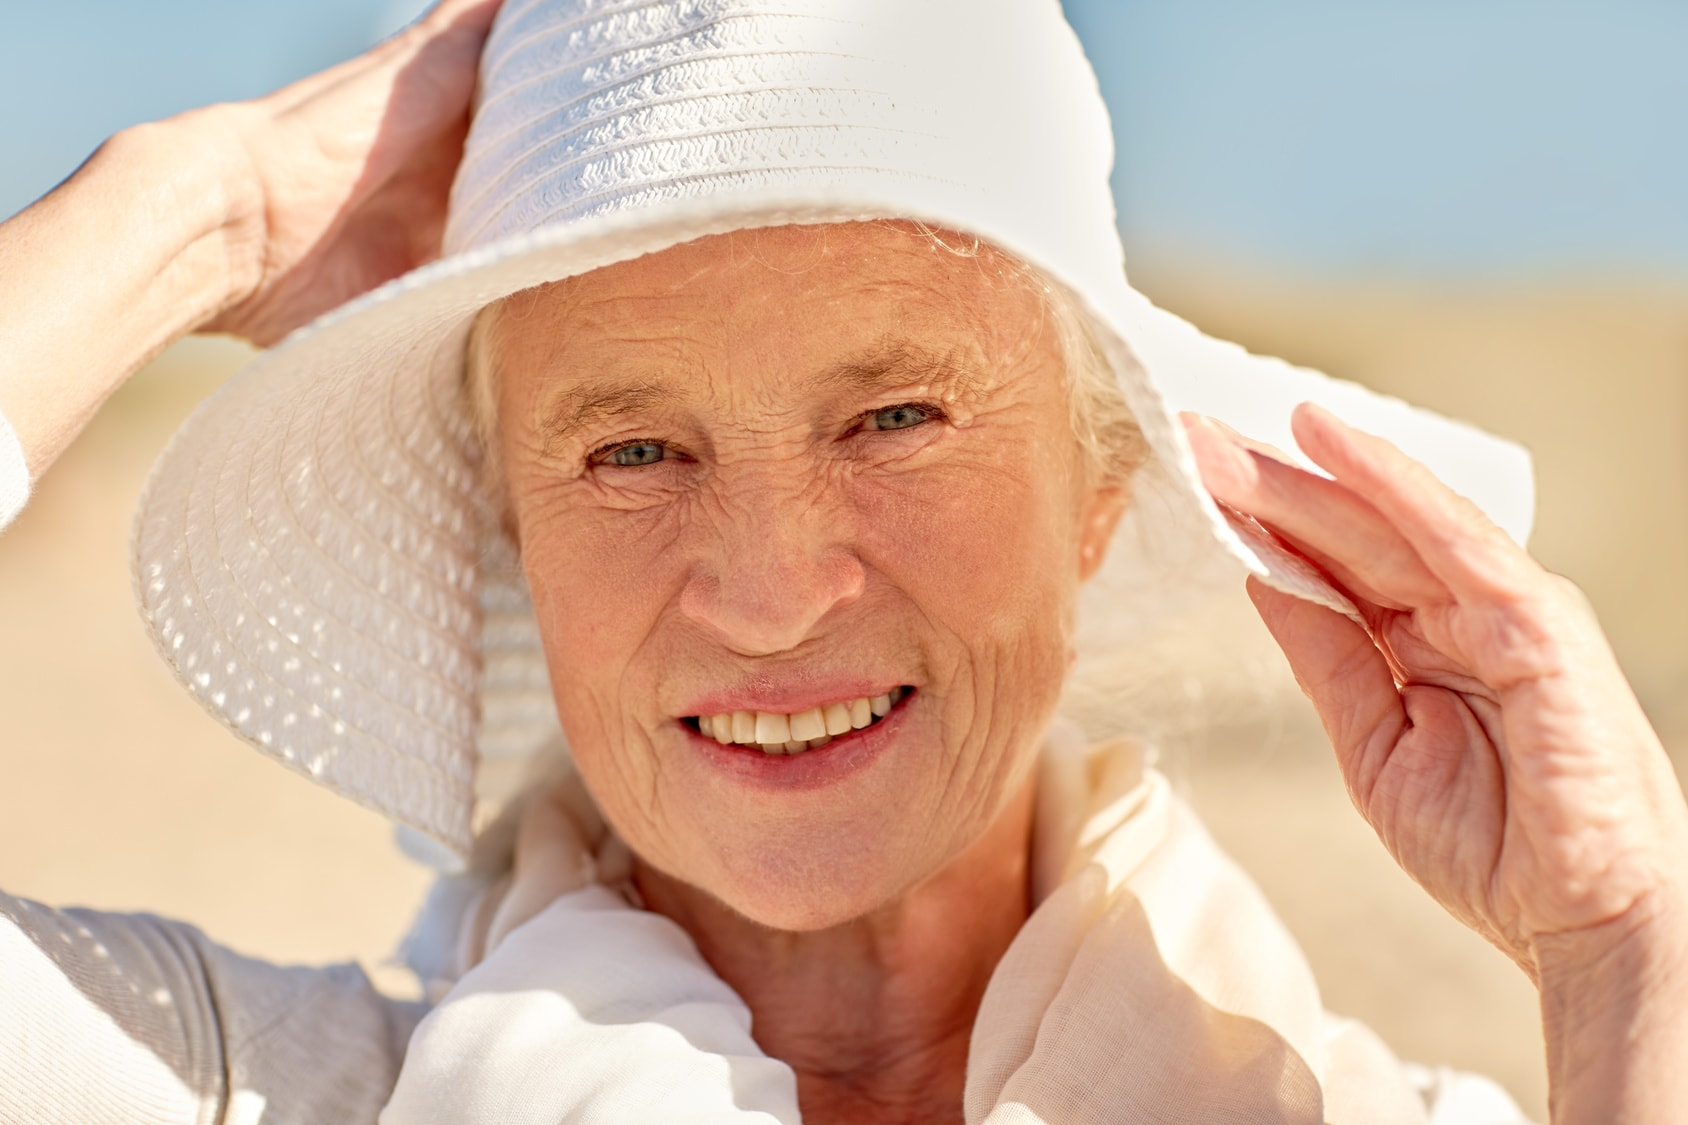 7 tips to enjoy sun safely and reduce skin cancer risk